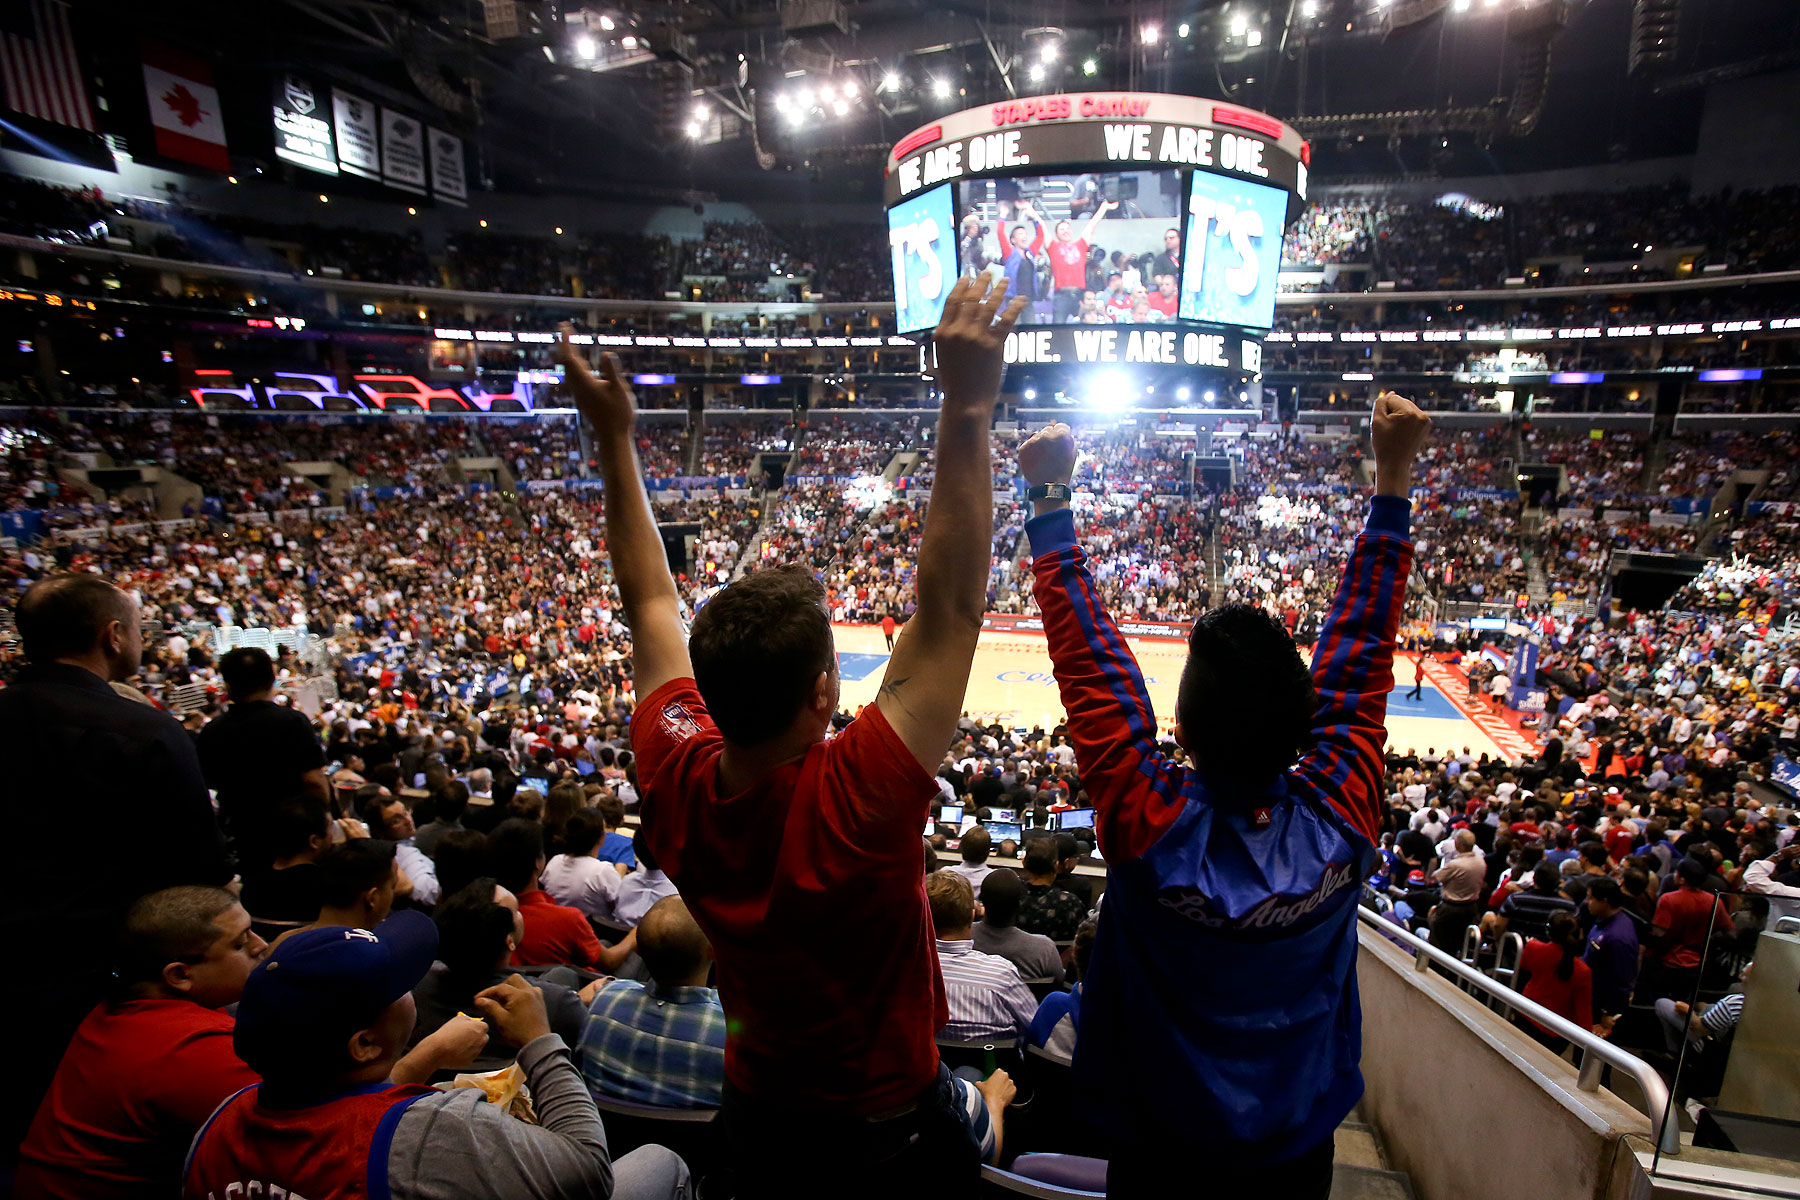 Fans show their support of the Los Angeles Clippers during Game 5 of the Clippers' opening-round NBA basketball playoff series against the Golden State Warriors on April 29, 2014, in Los Angeles